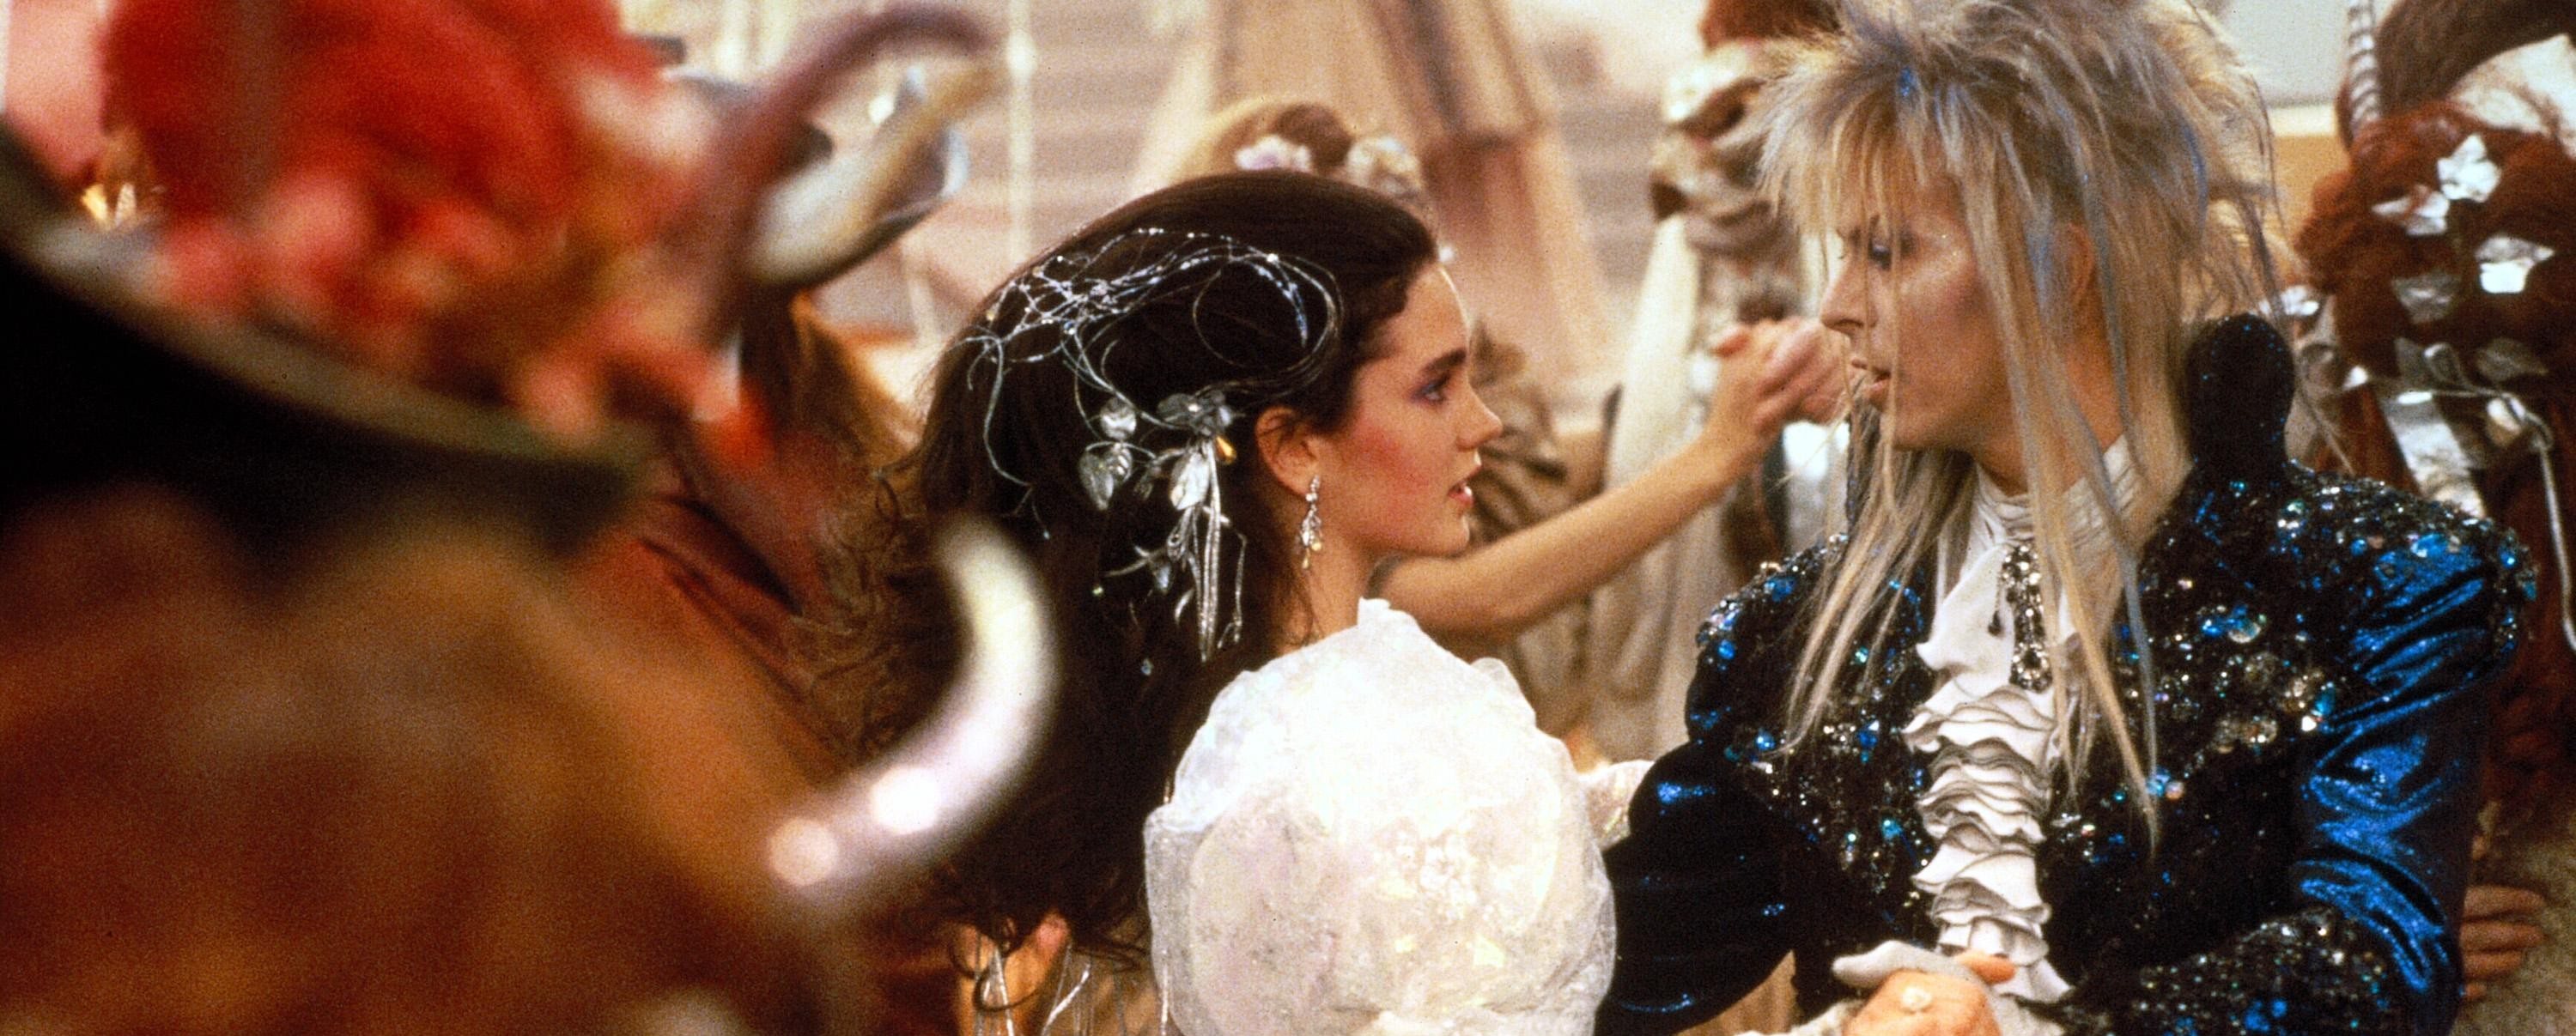 Labyrinth (1986) | ccpopculture Labyrinth 1986